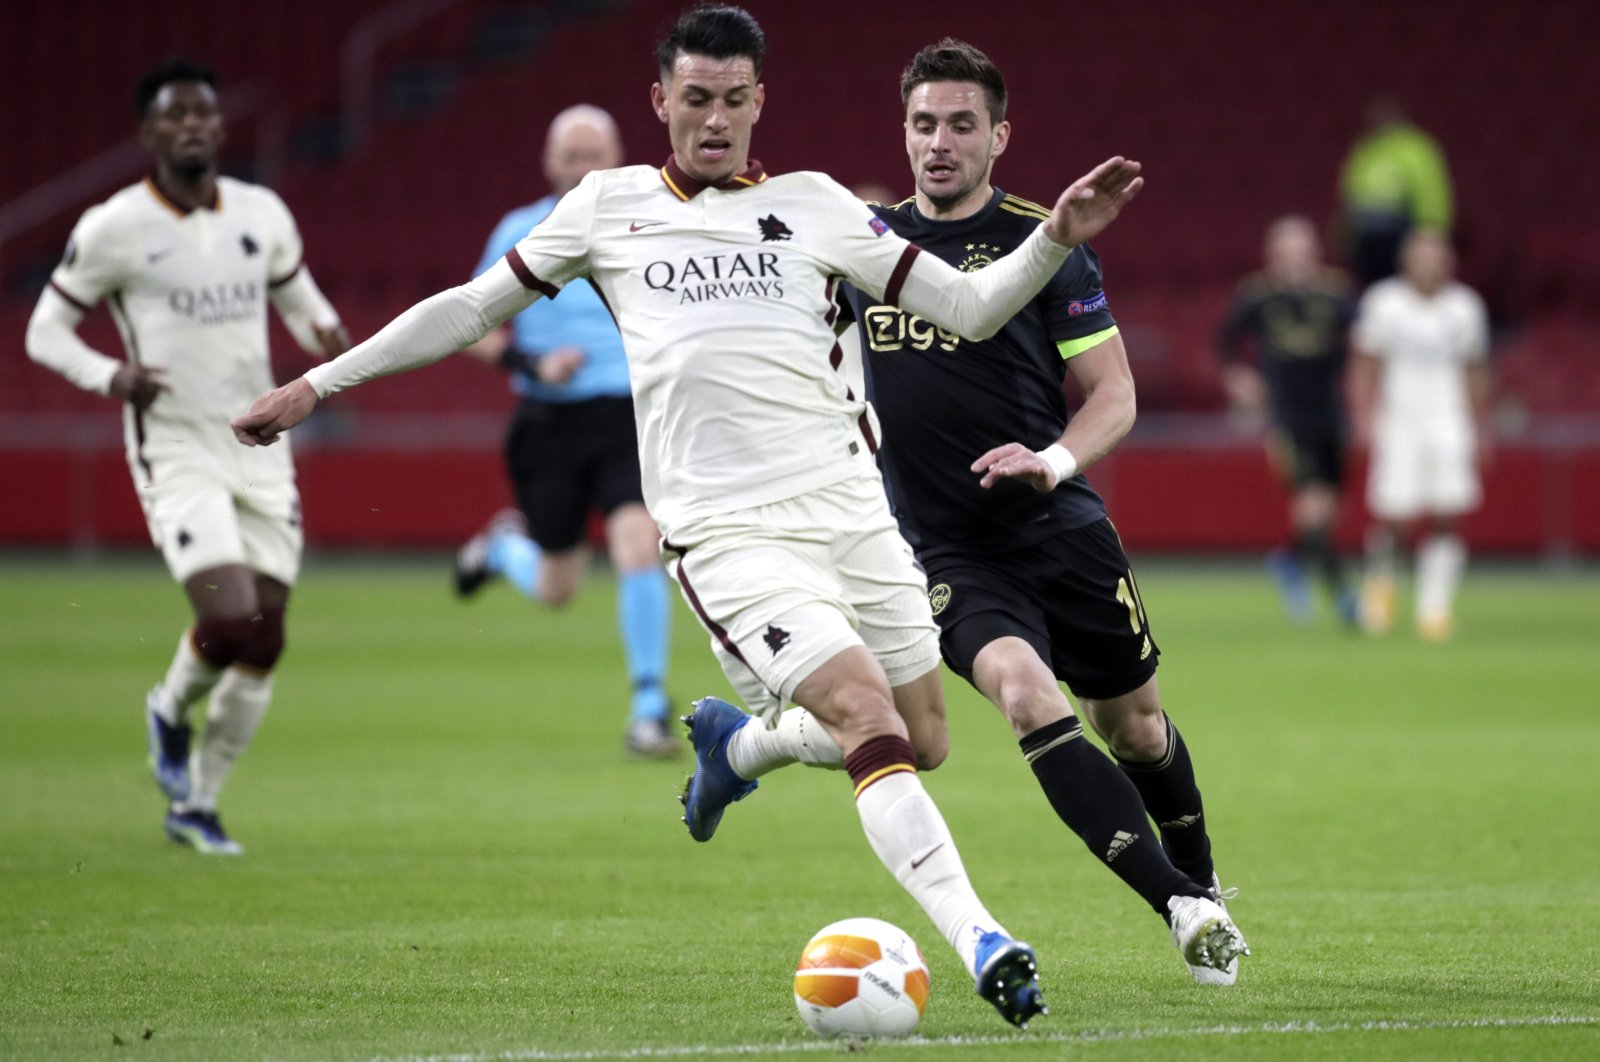 Roma's Roger Ibanez (L) duels for the ball with Ajax's Dusan Tadic during the Europa League first leg quarterfinal match at the Johan Cruyff Arena, Amsterdam, Netherlands, April 8, 2021. (AP Photo)